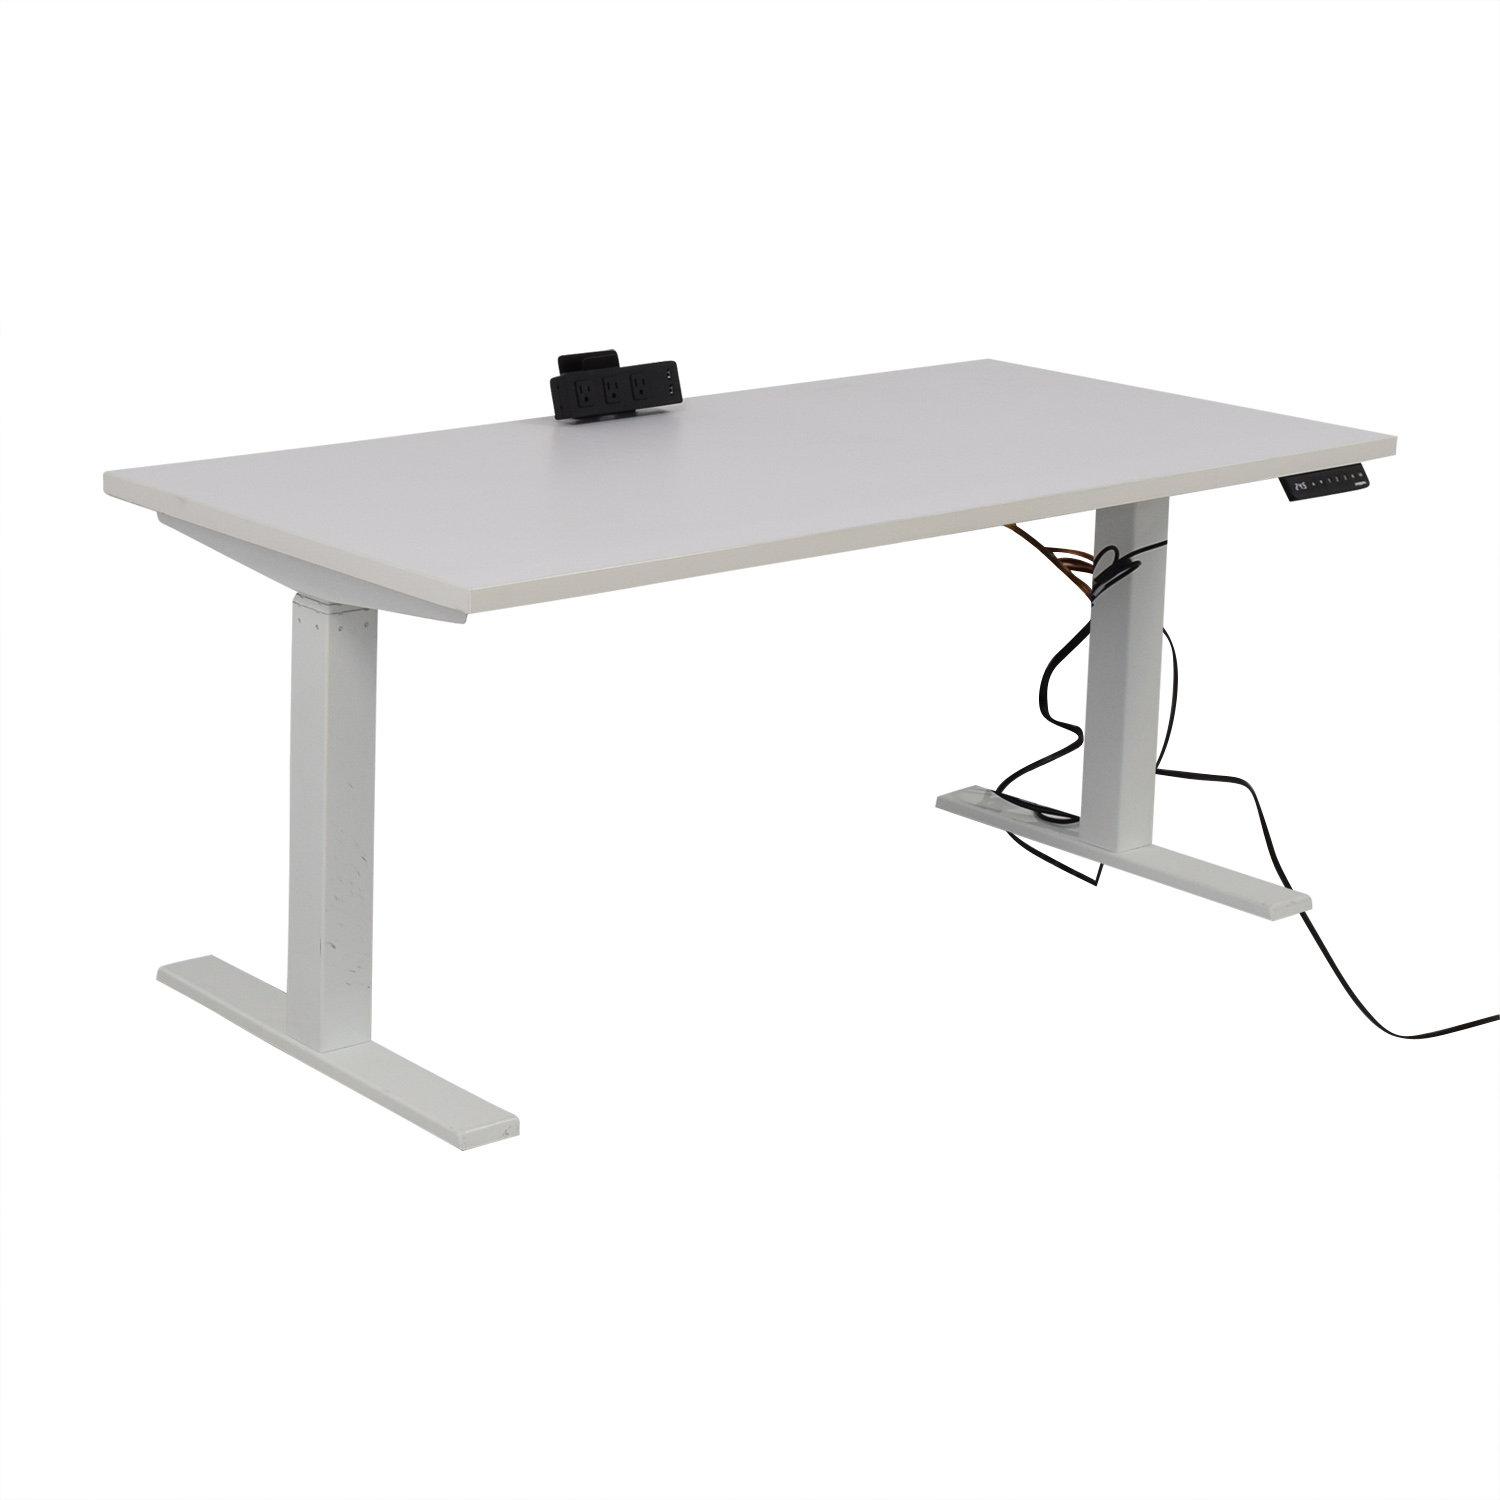 Poppin Poppin Series L Adjustable Height Single Desk second hand